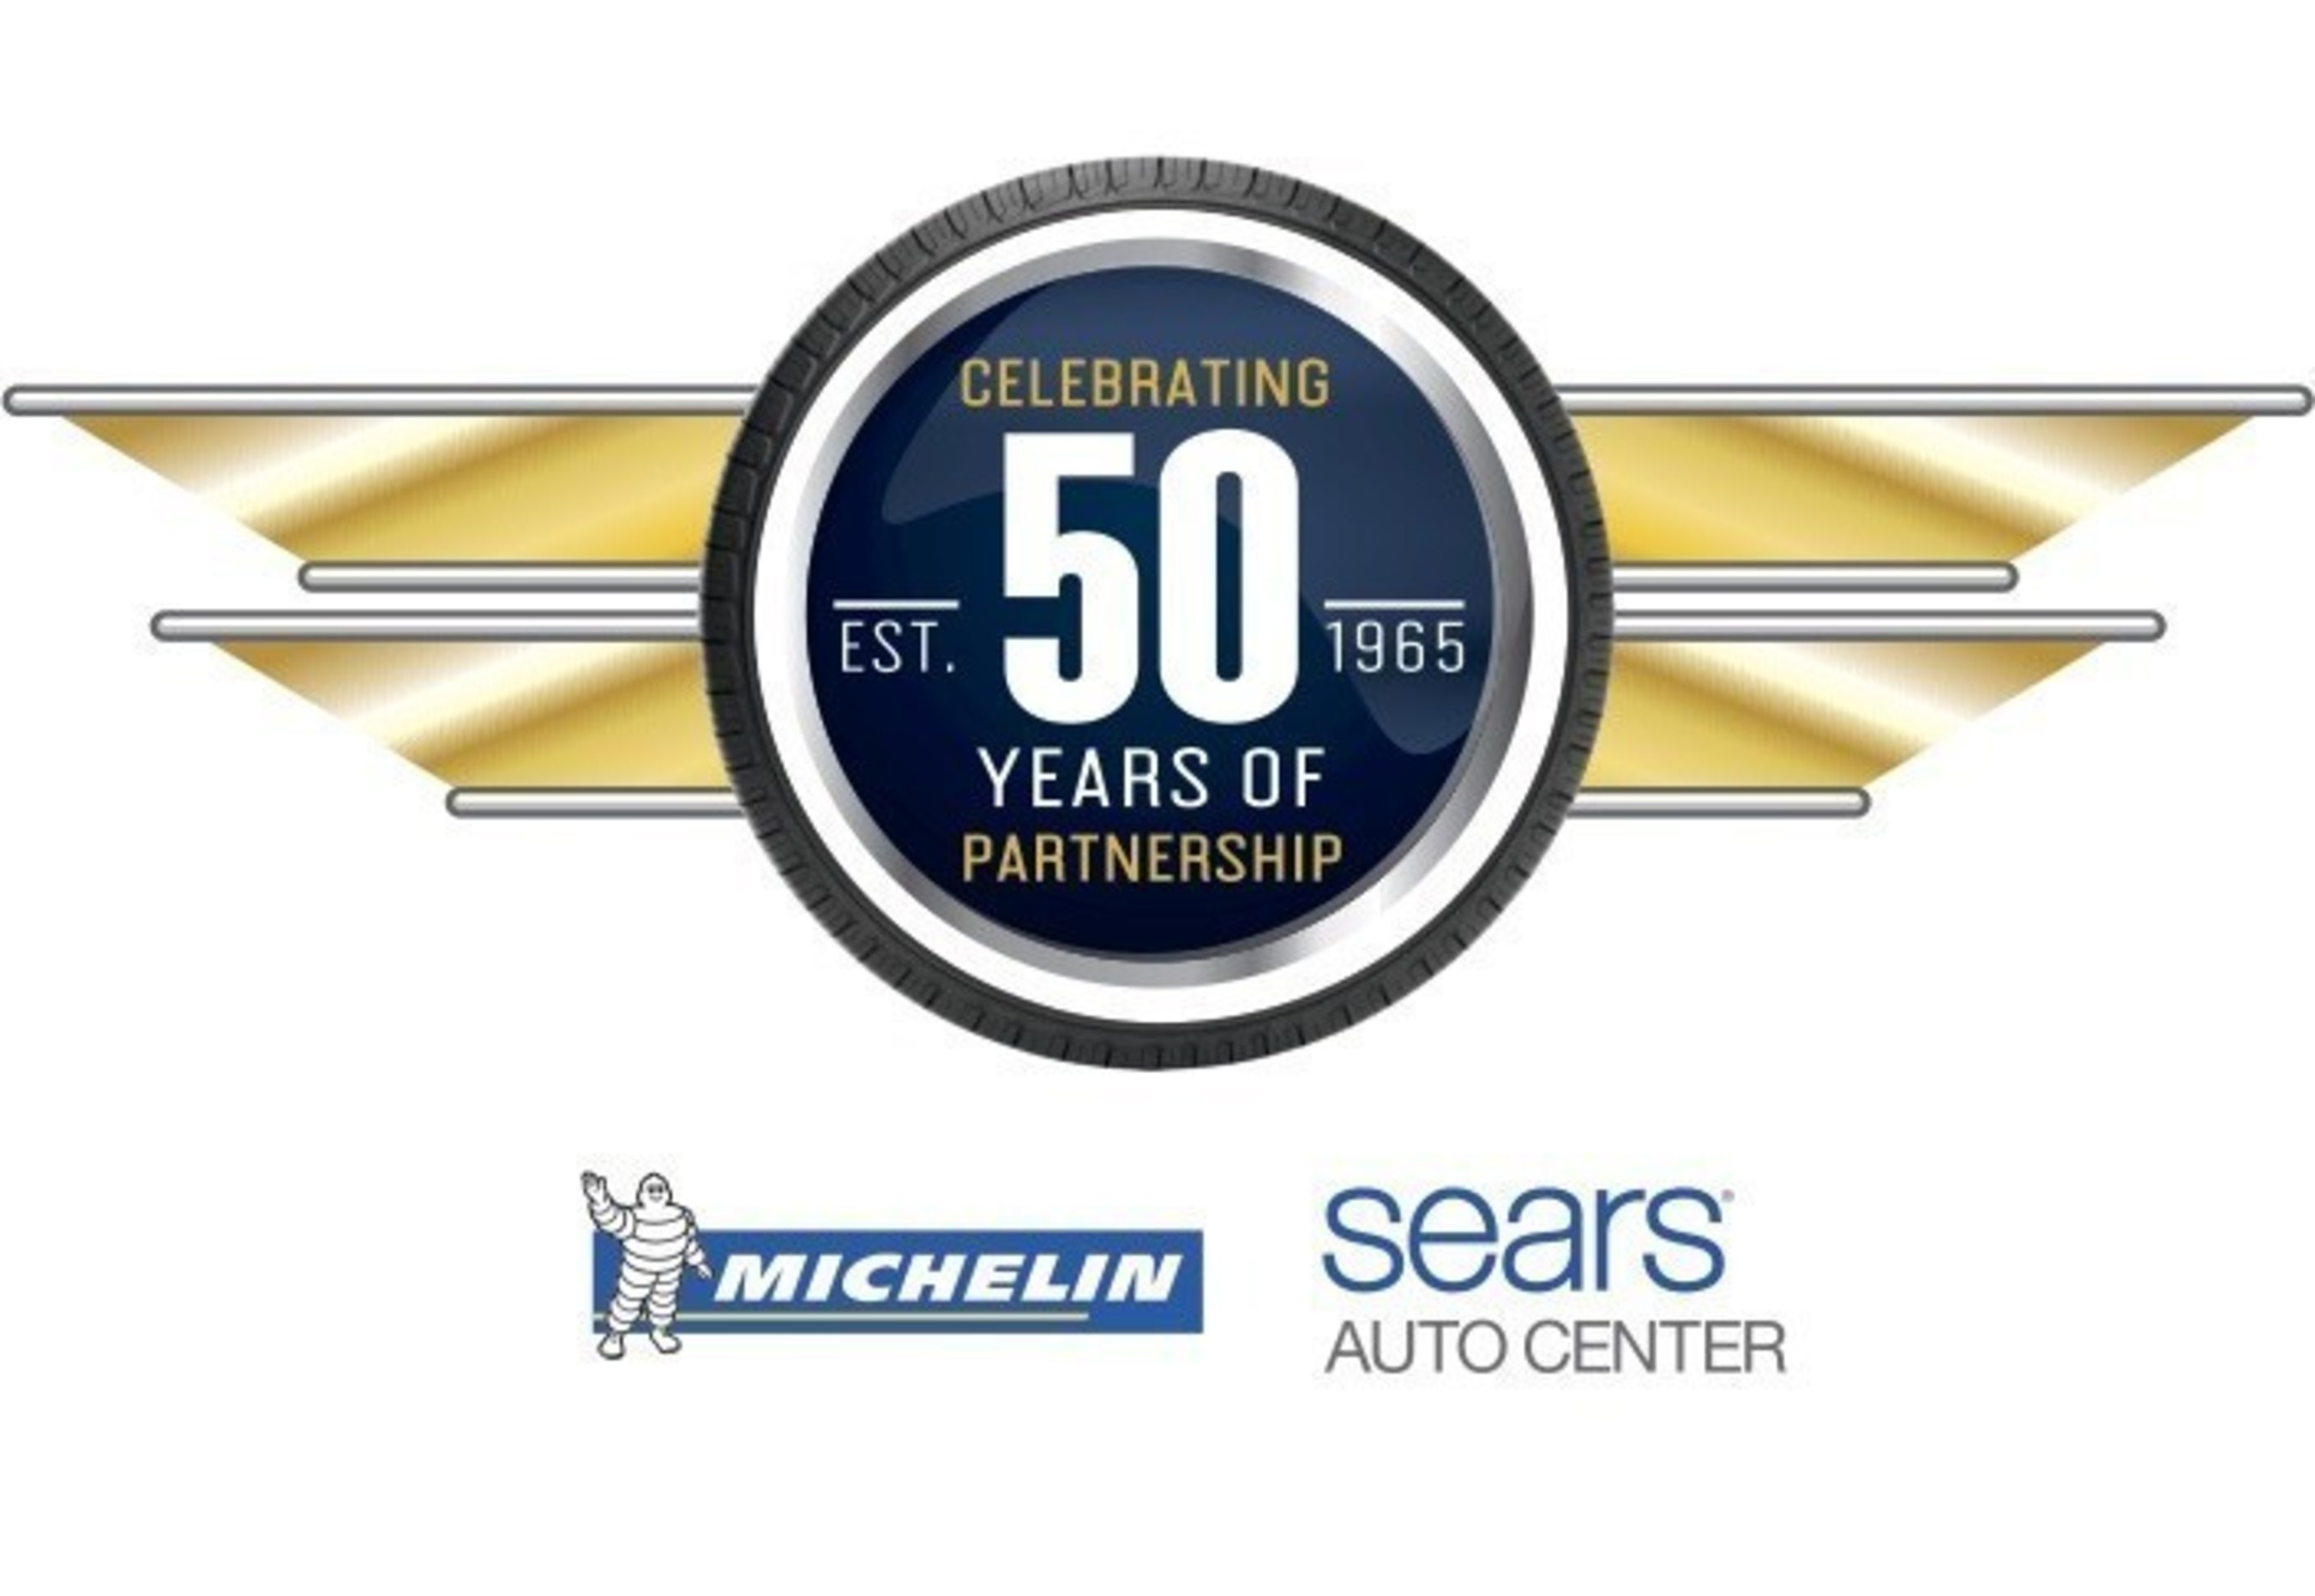 Sears And Michelin Celebrate 50-Year Relationship